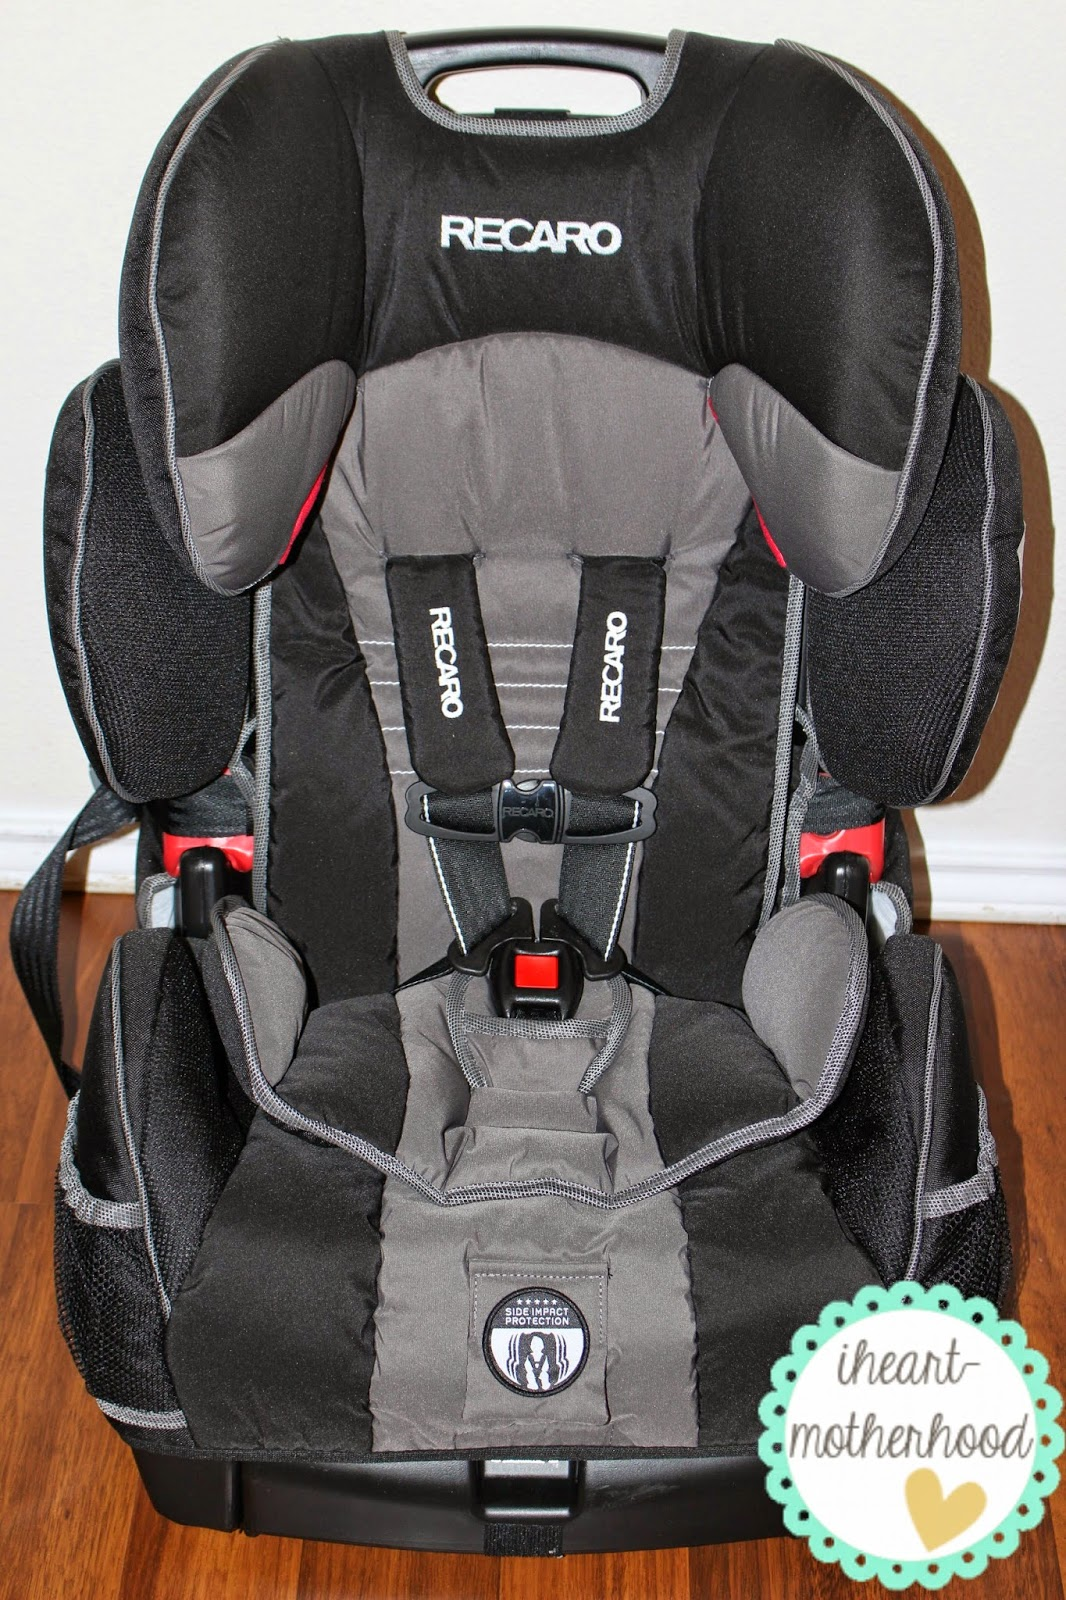 RECARO Performance Sport Car Seat Review And Giveaway